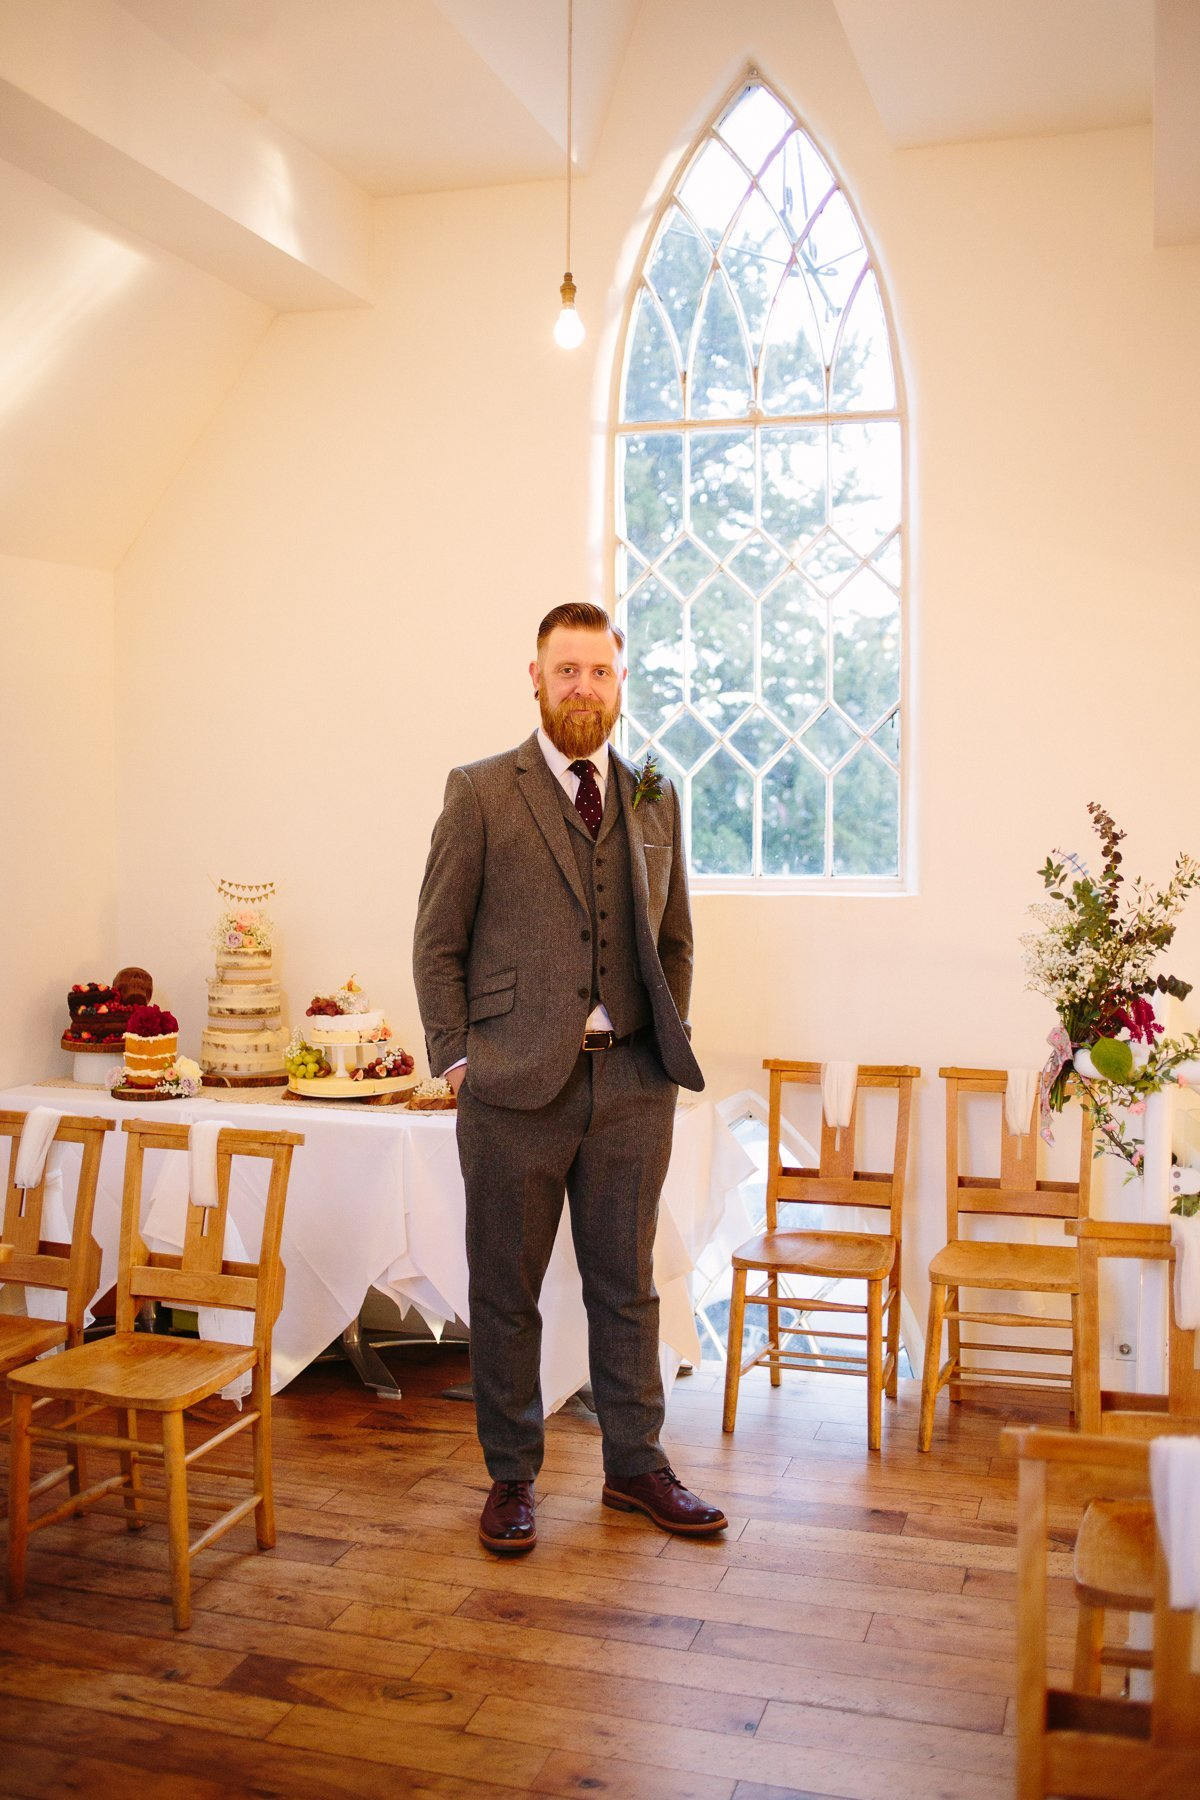 The Old Parish Rooms Rayleigh Wedding